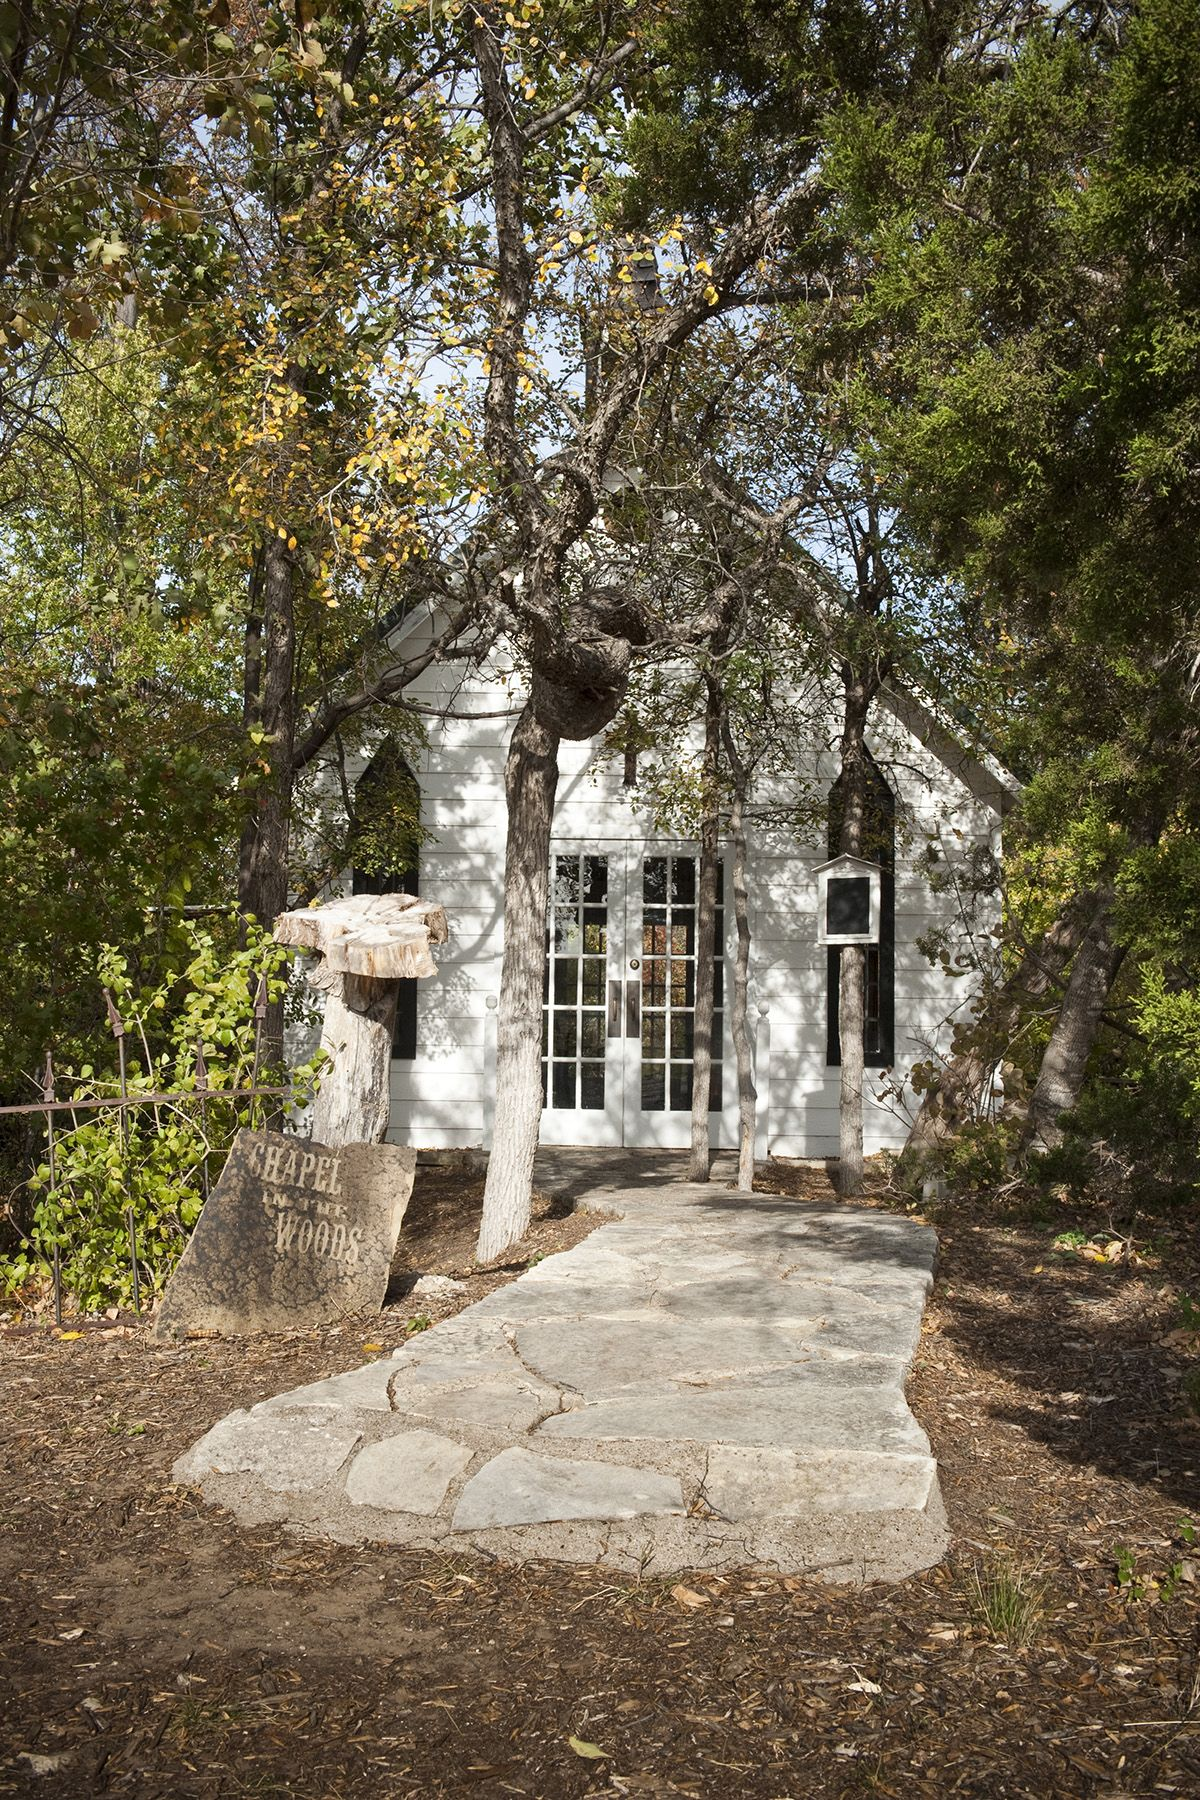 Chapel in the Woods Glenrose, Texas | Travel Dreams | Pinterest ...